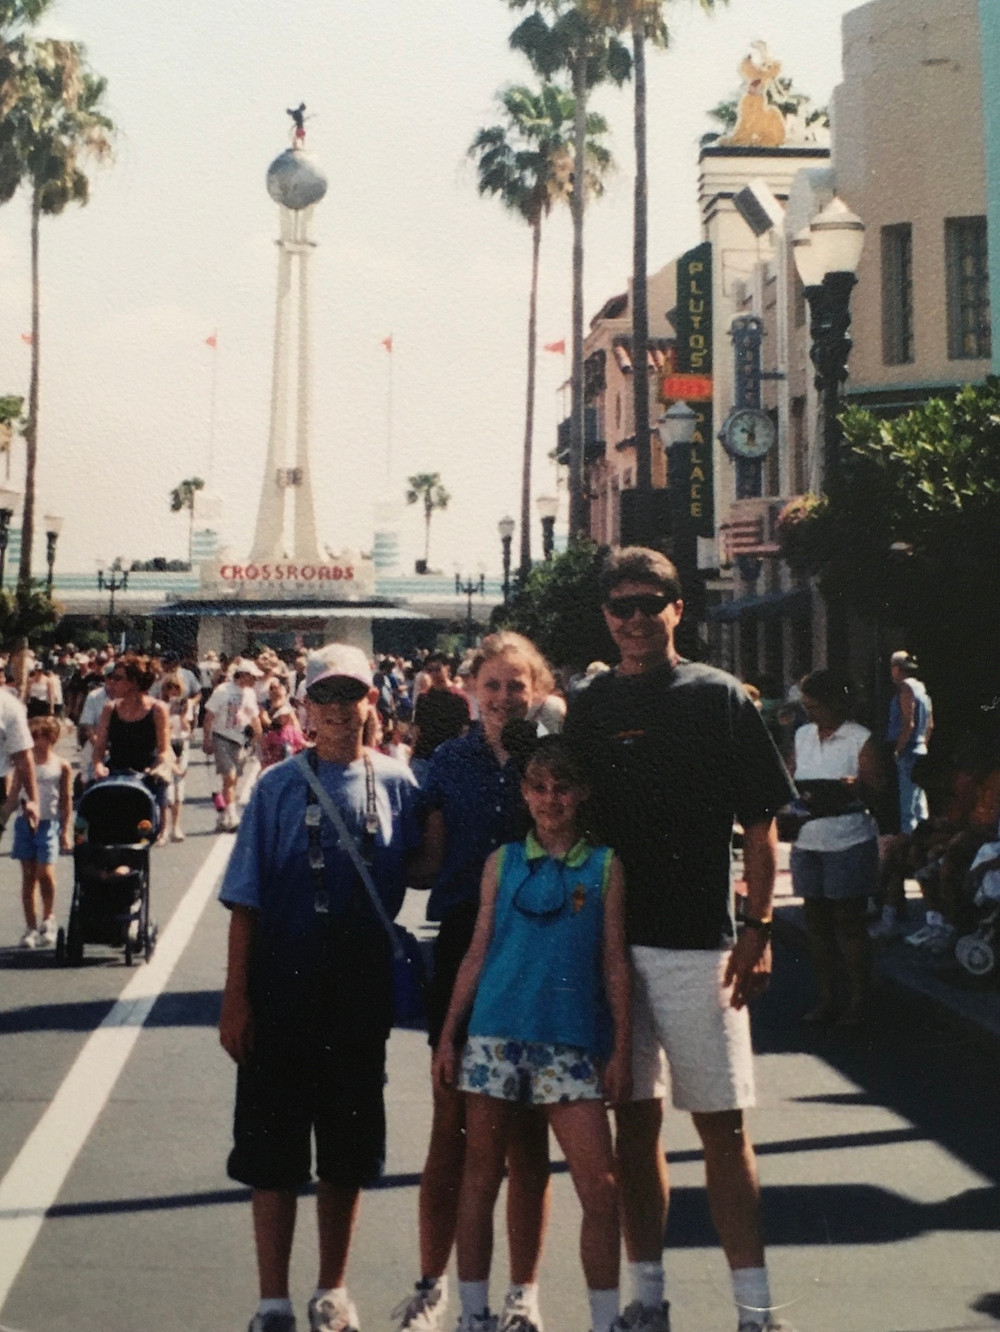 Standing on Hollywood Boulevard in MGM Studios, now called Disney's Hollywood Studios